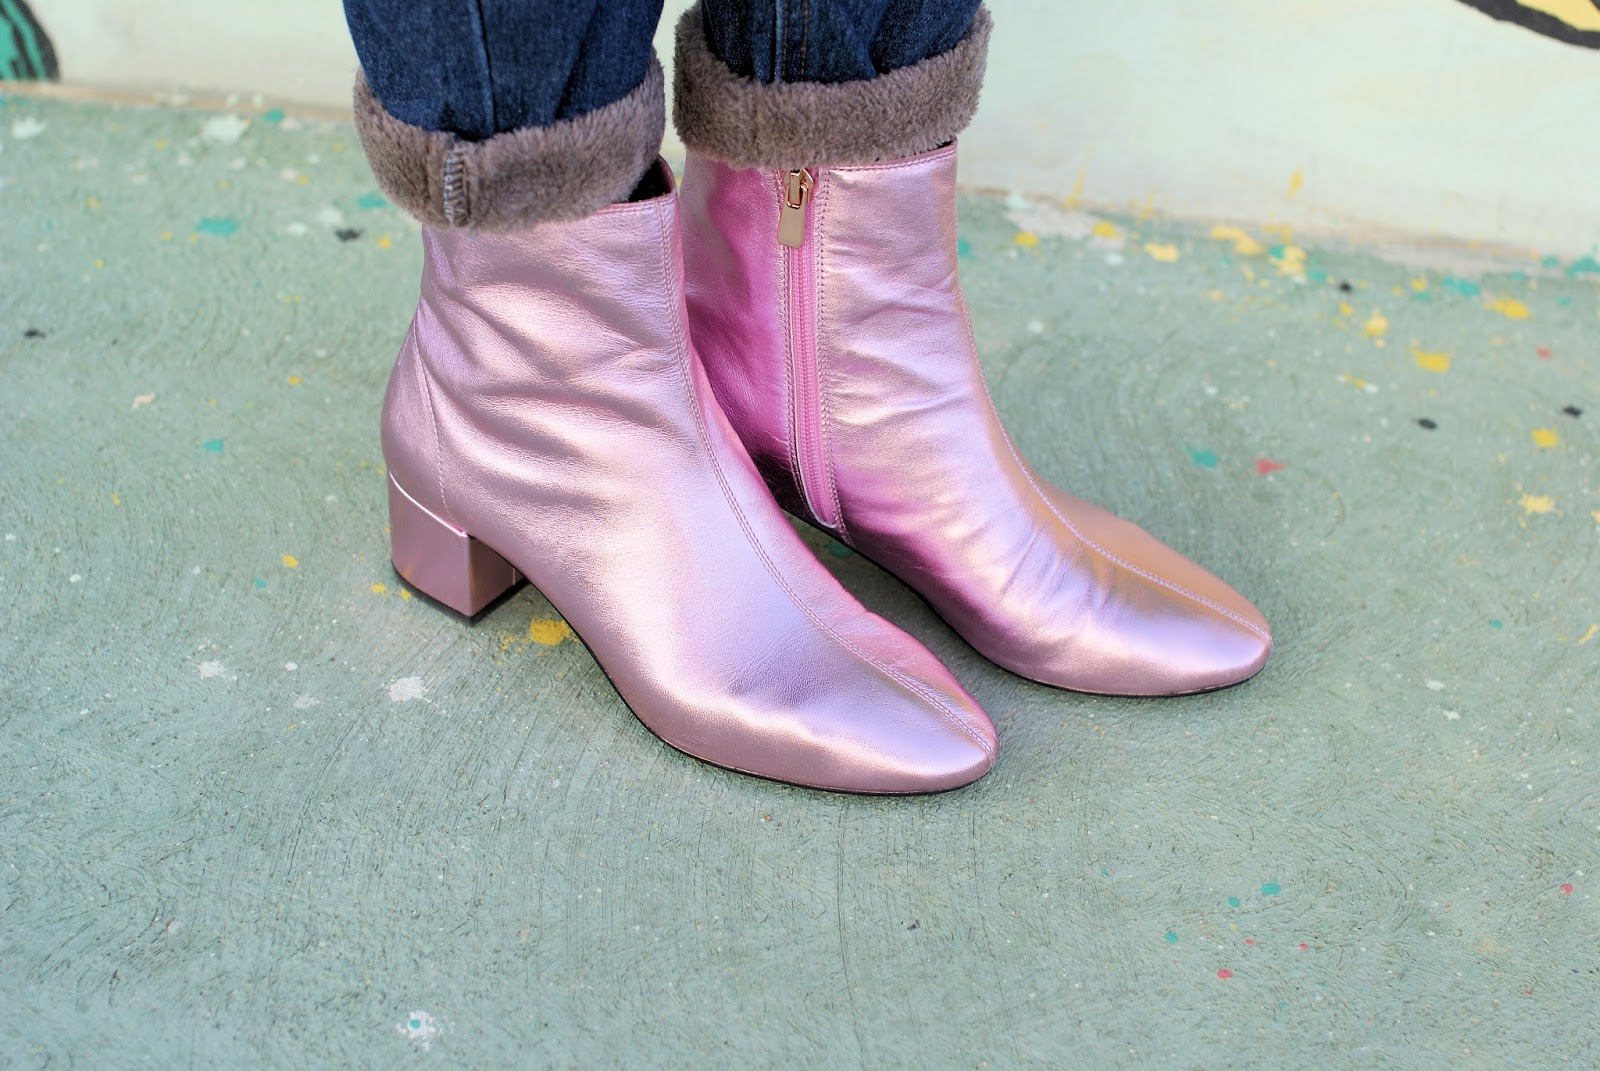 Metallic pink Other Stories ankle boots on Fashion and Cookies fashion blog, fashion blogger style